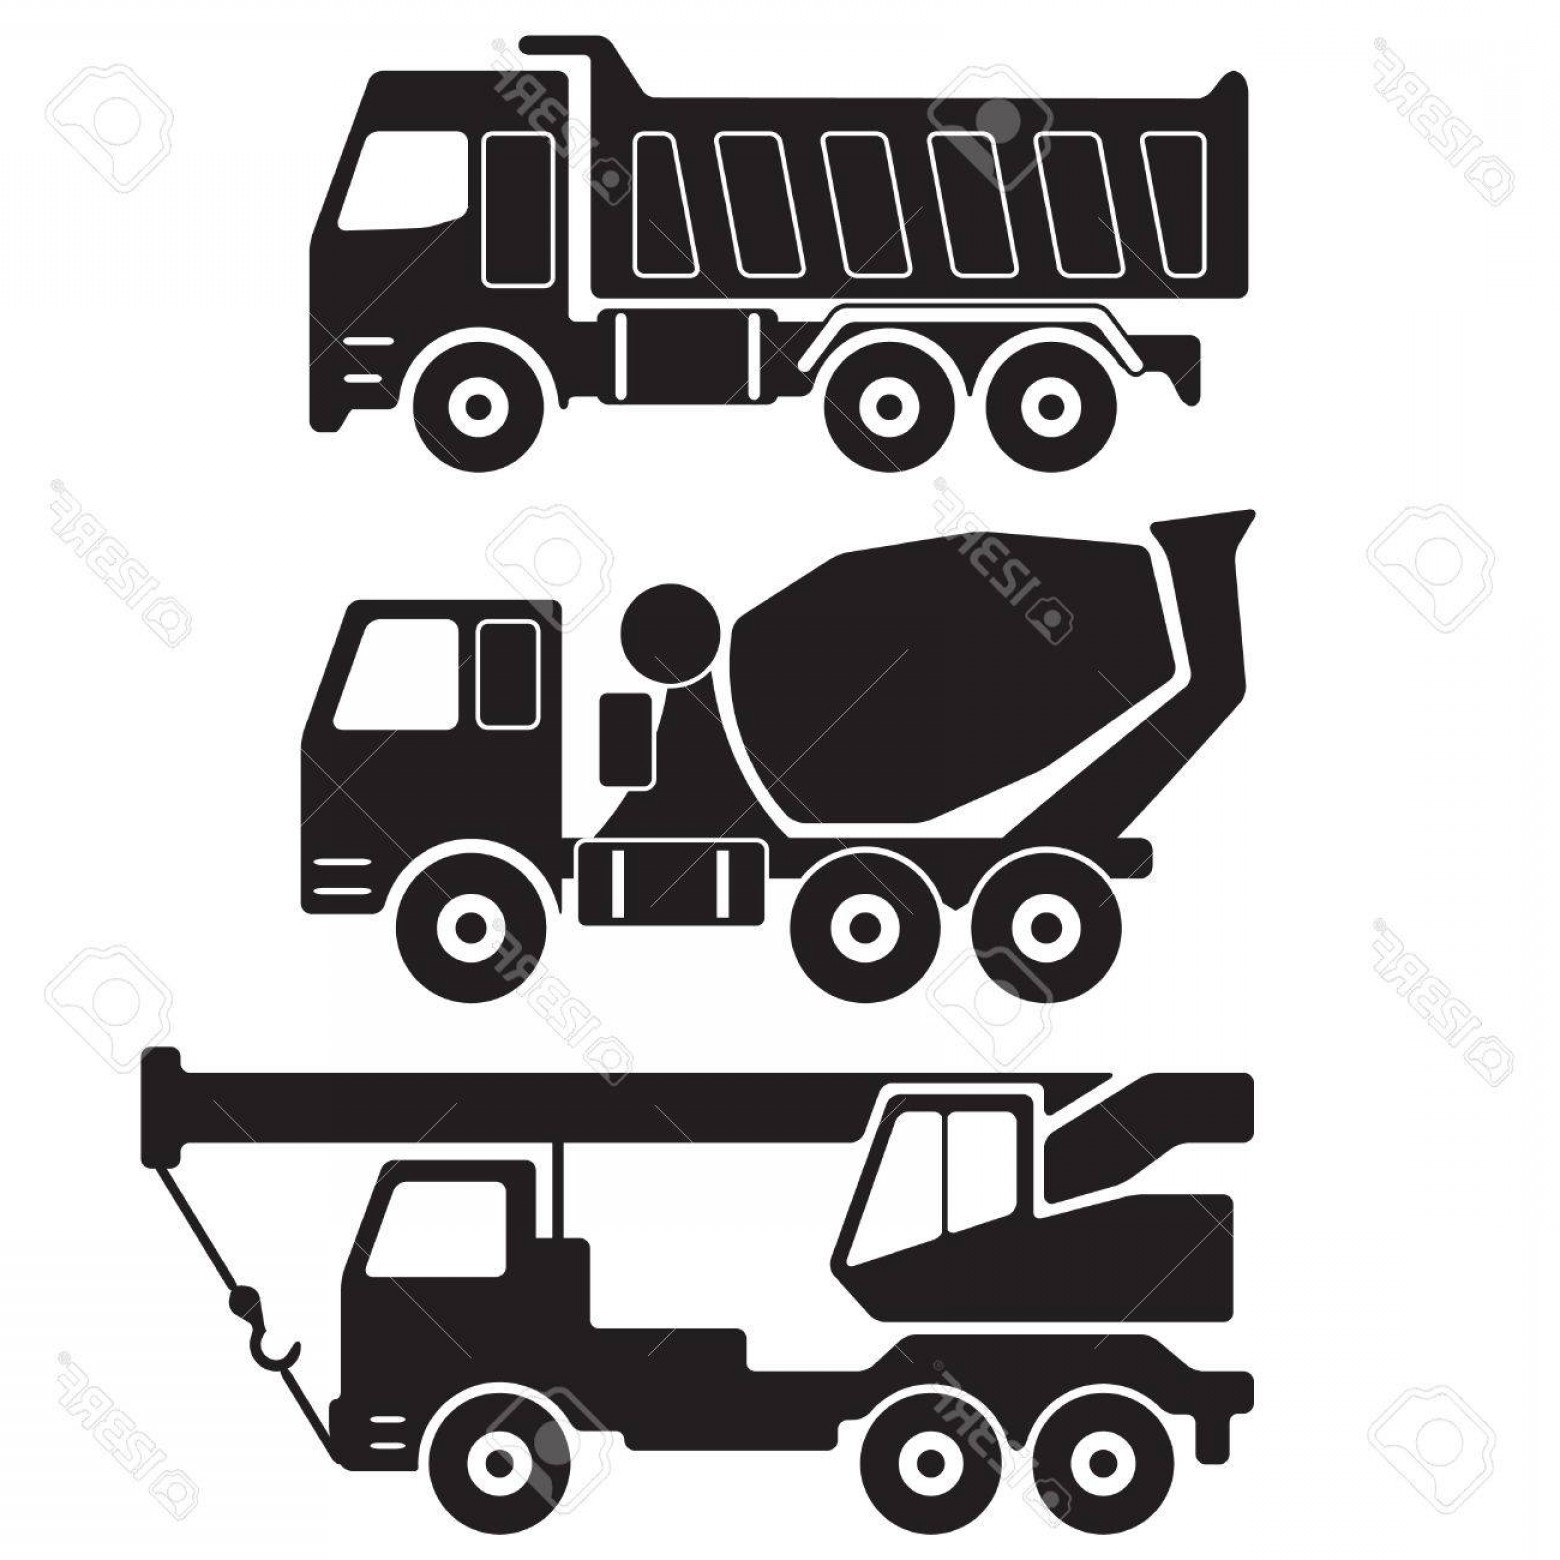 Dump Truck Vector Black And White: Photostock Vector Dump Truck Concrete Mixer Truck Truck Crane Black Silhouette On White Background Construction Icon O